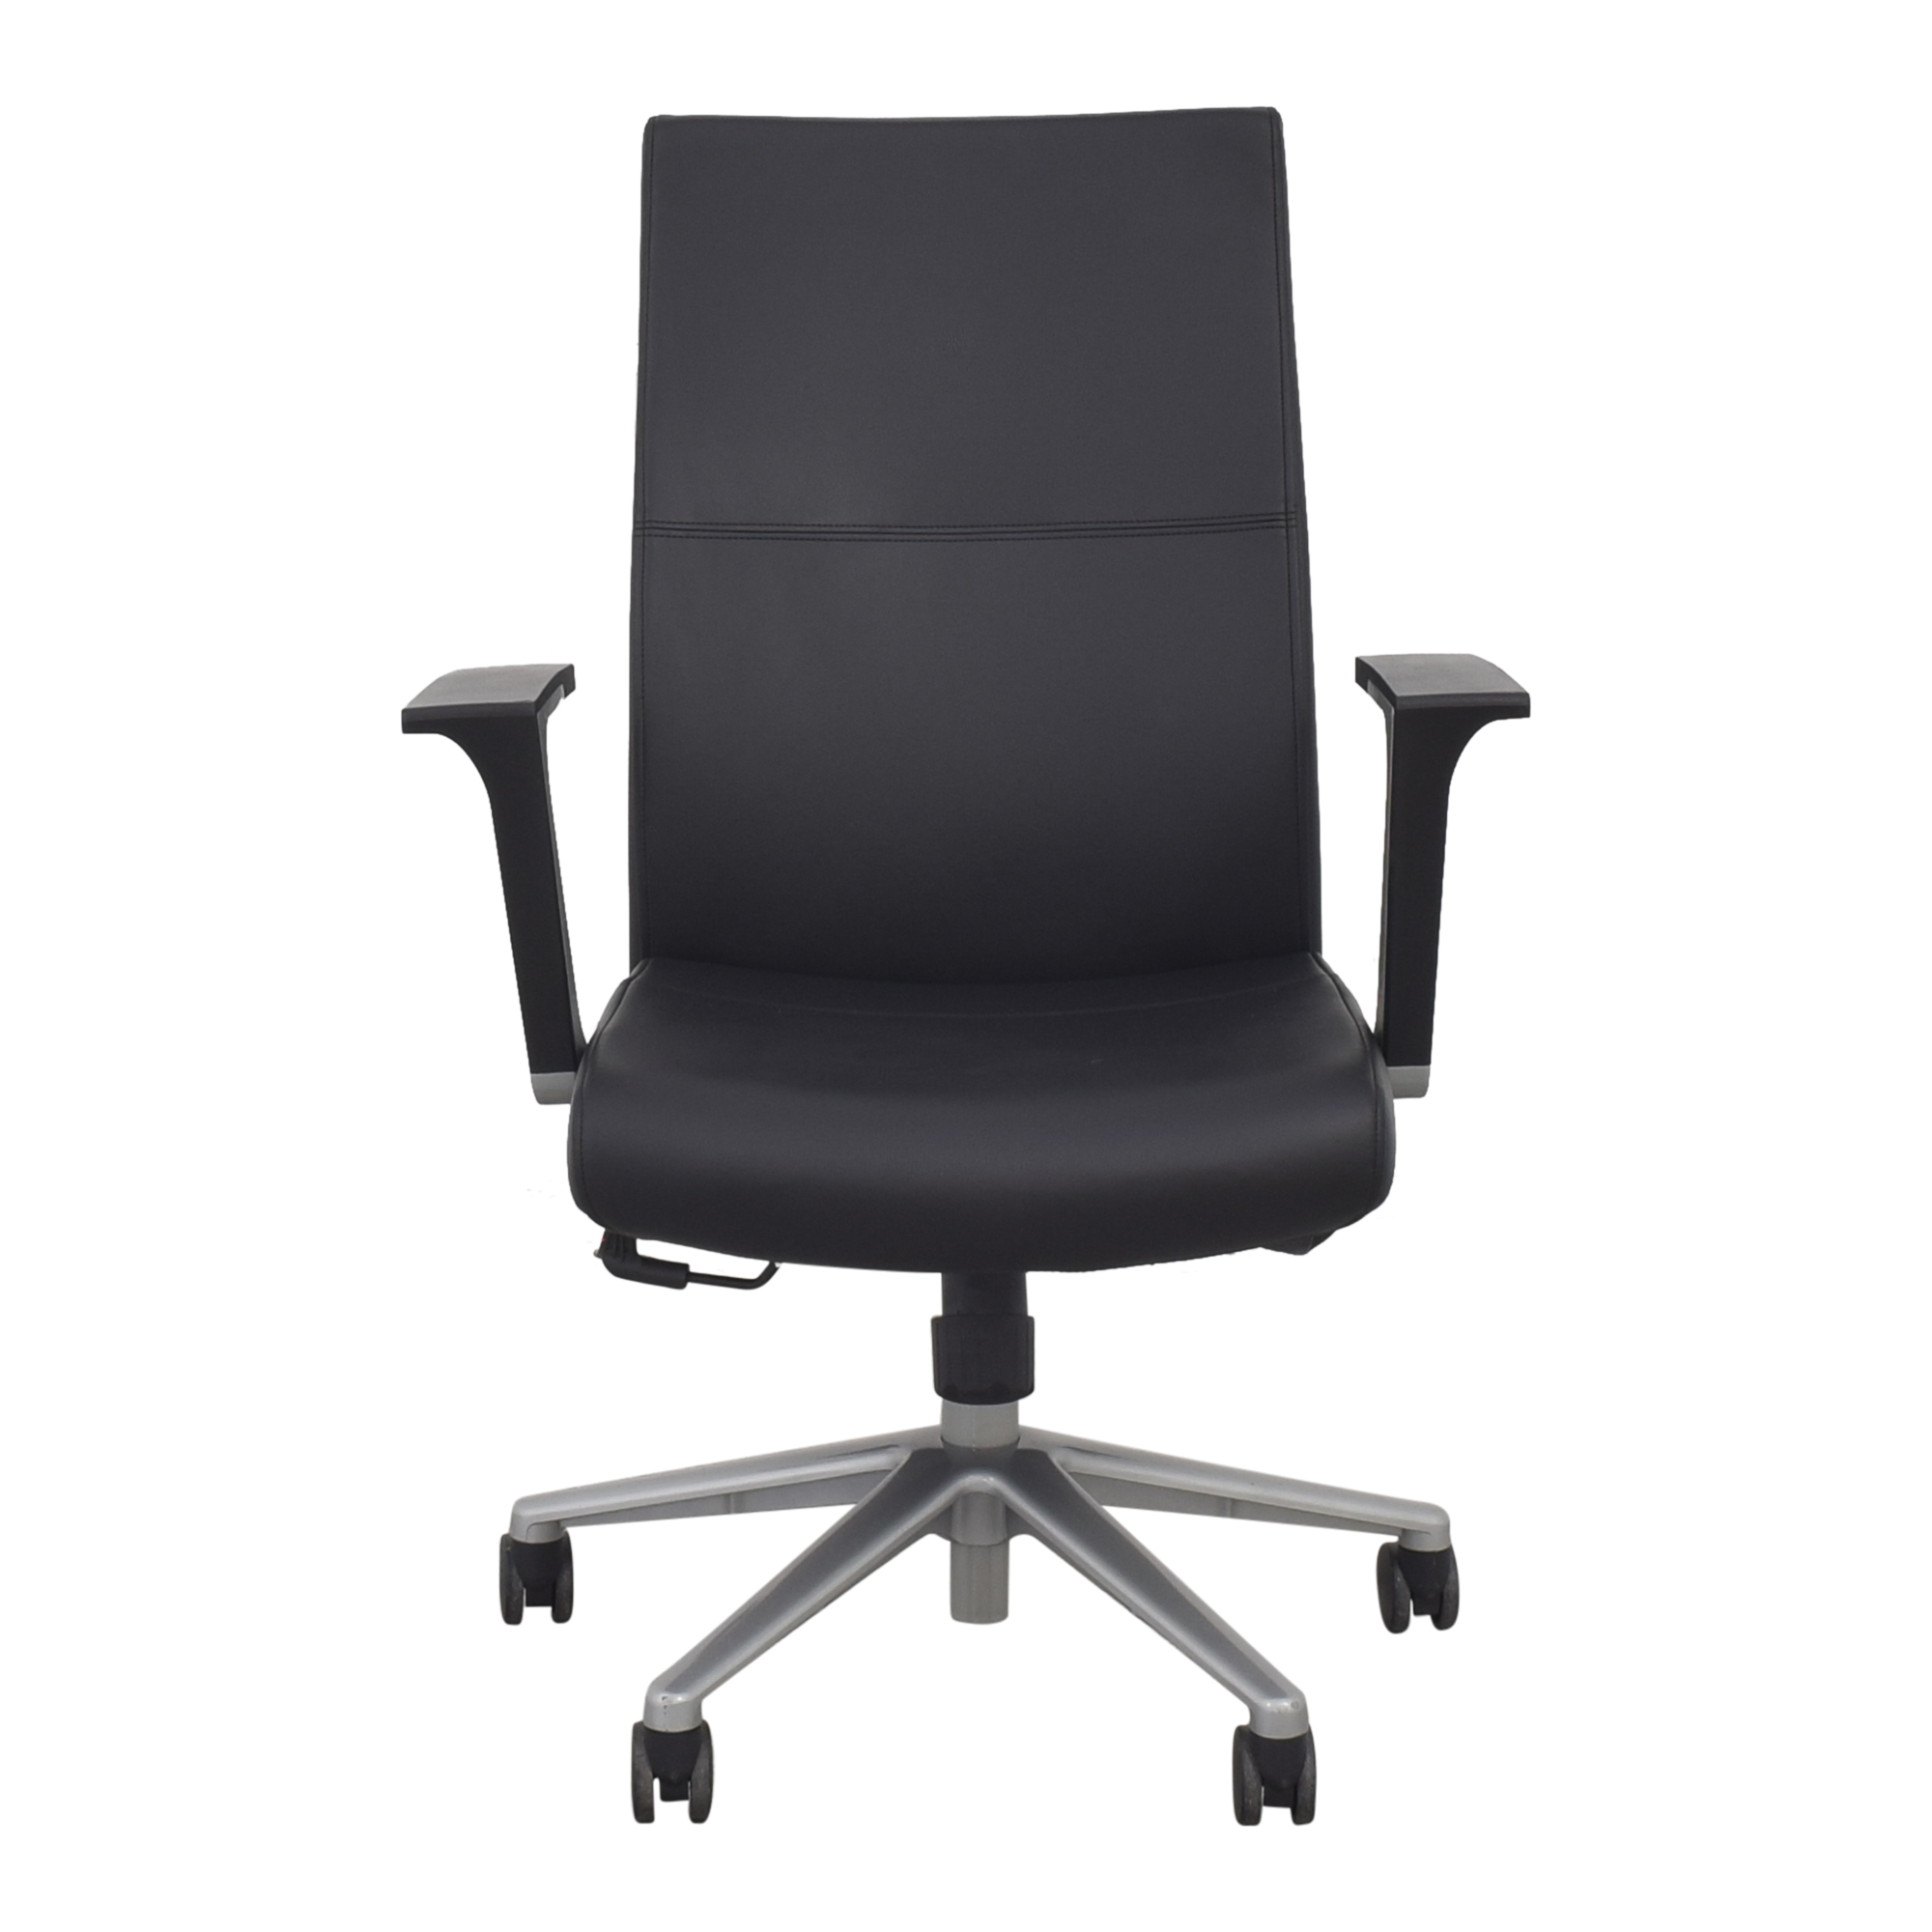 SitOnIt SitOnIt Prava Office Chair nj